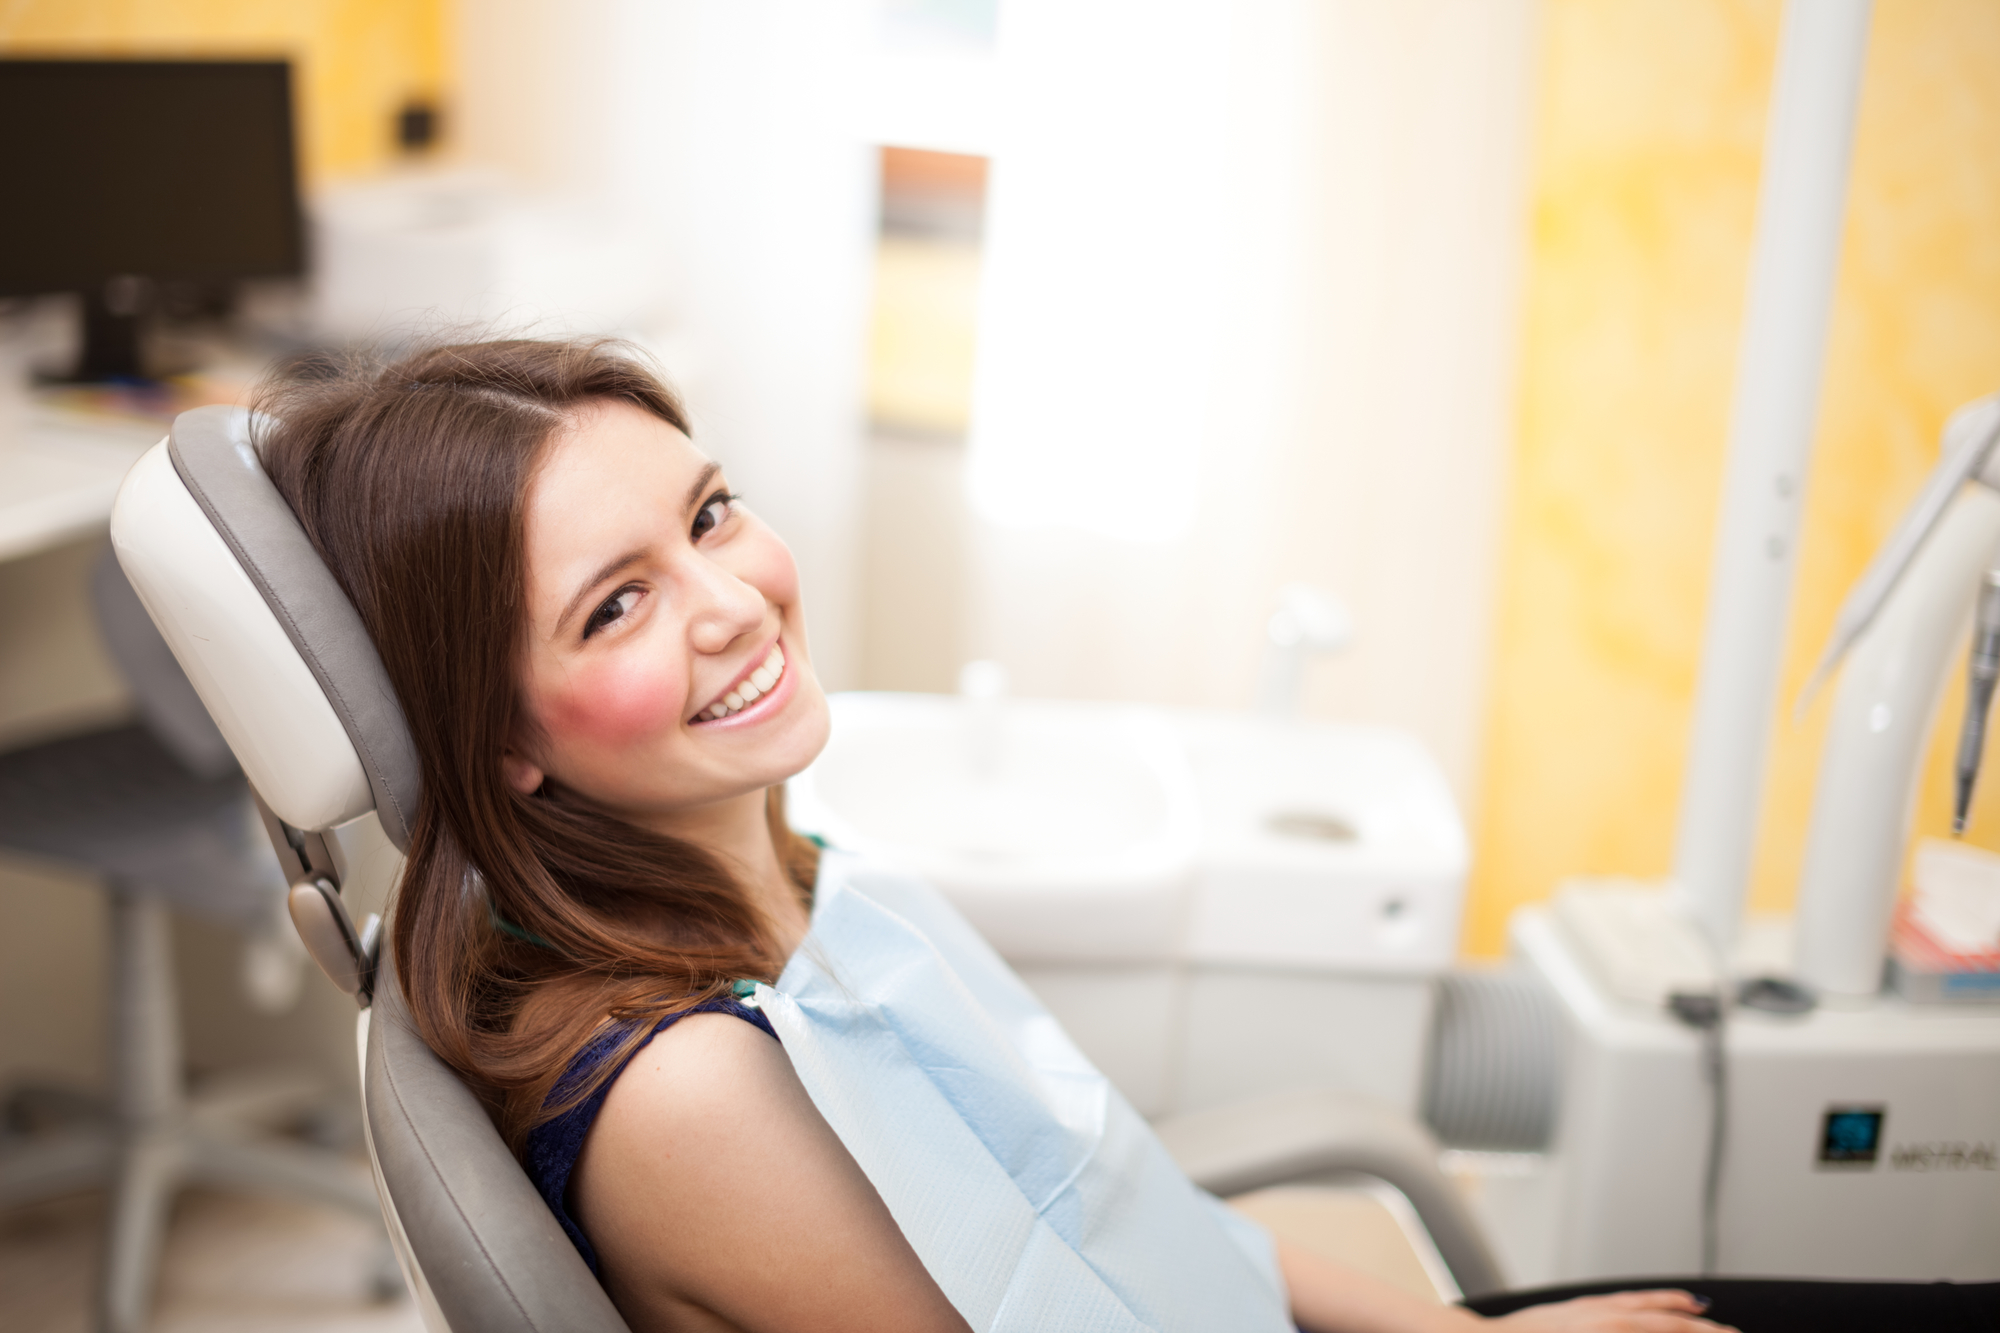 who is the best cosmetic dentist west palm beach?